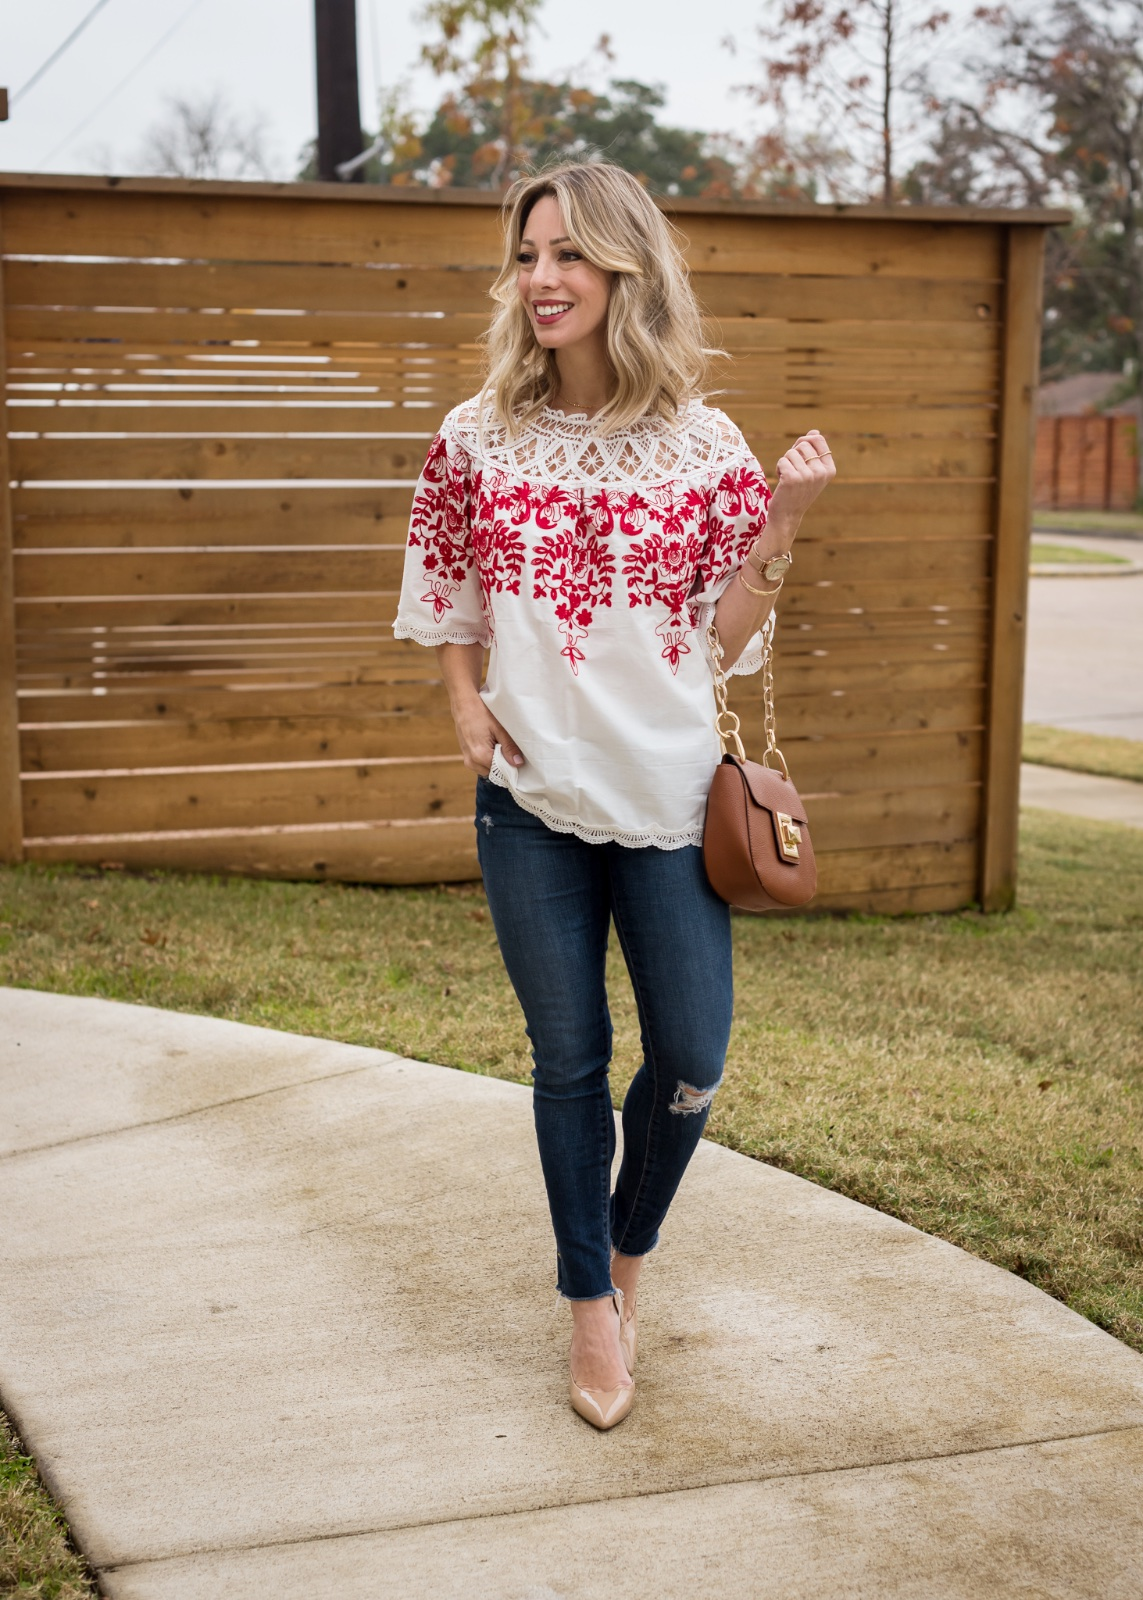 Jeans and red and white embroidered top